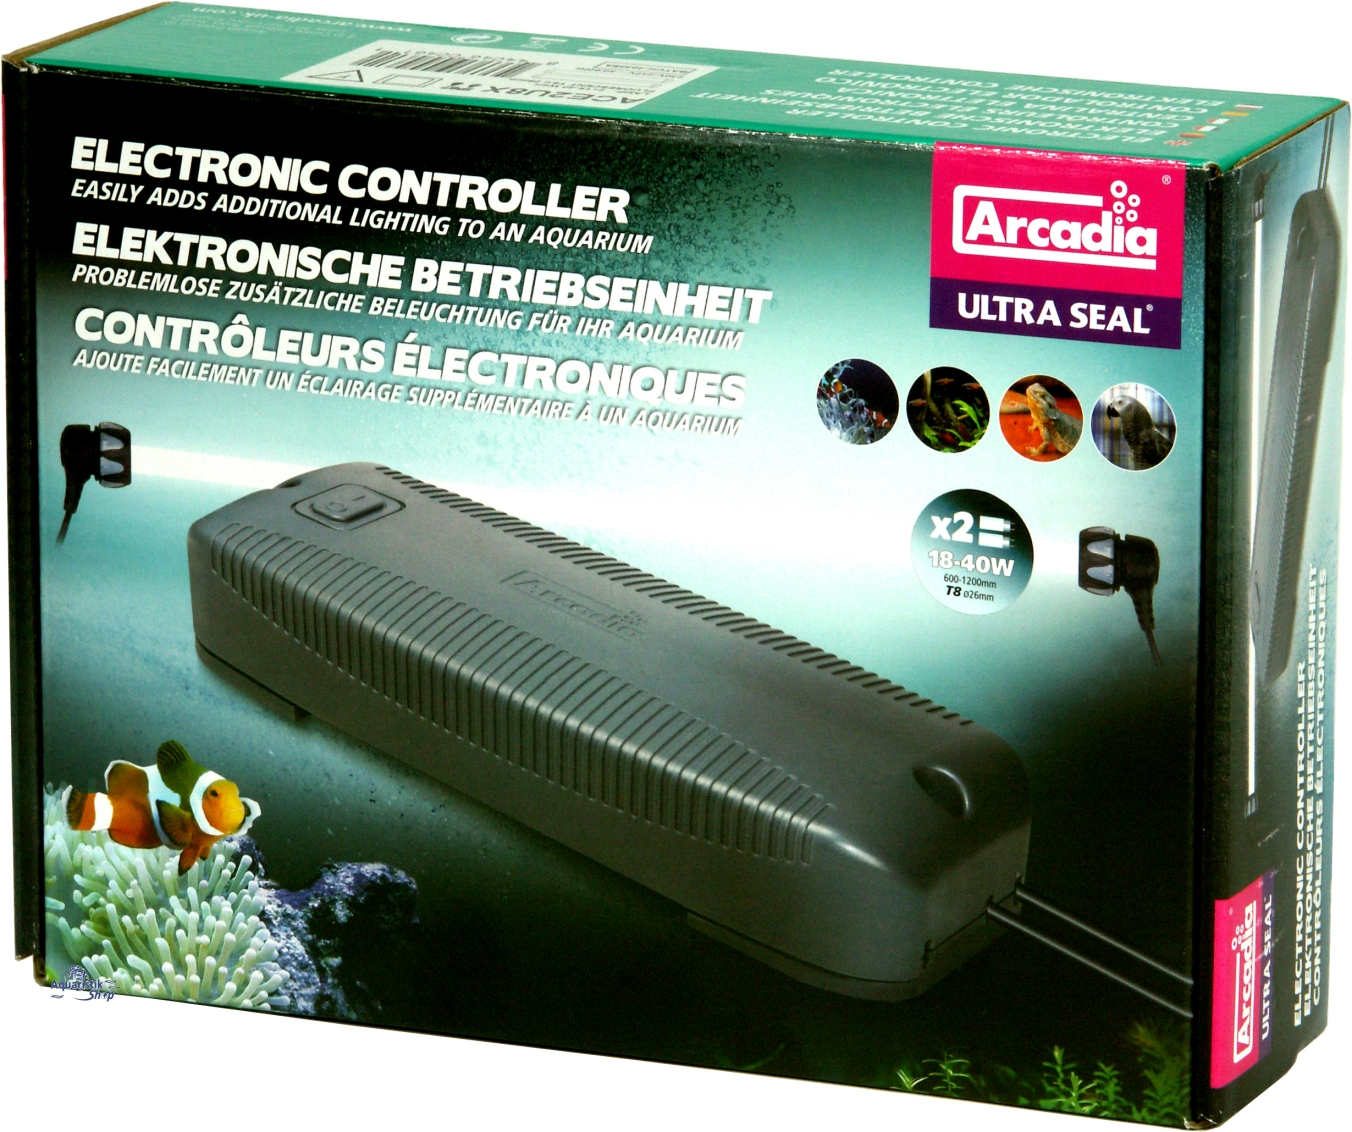 Arcadia Ultra Seal Electronic Double Controller T8